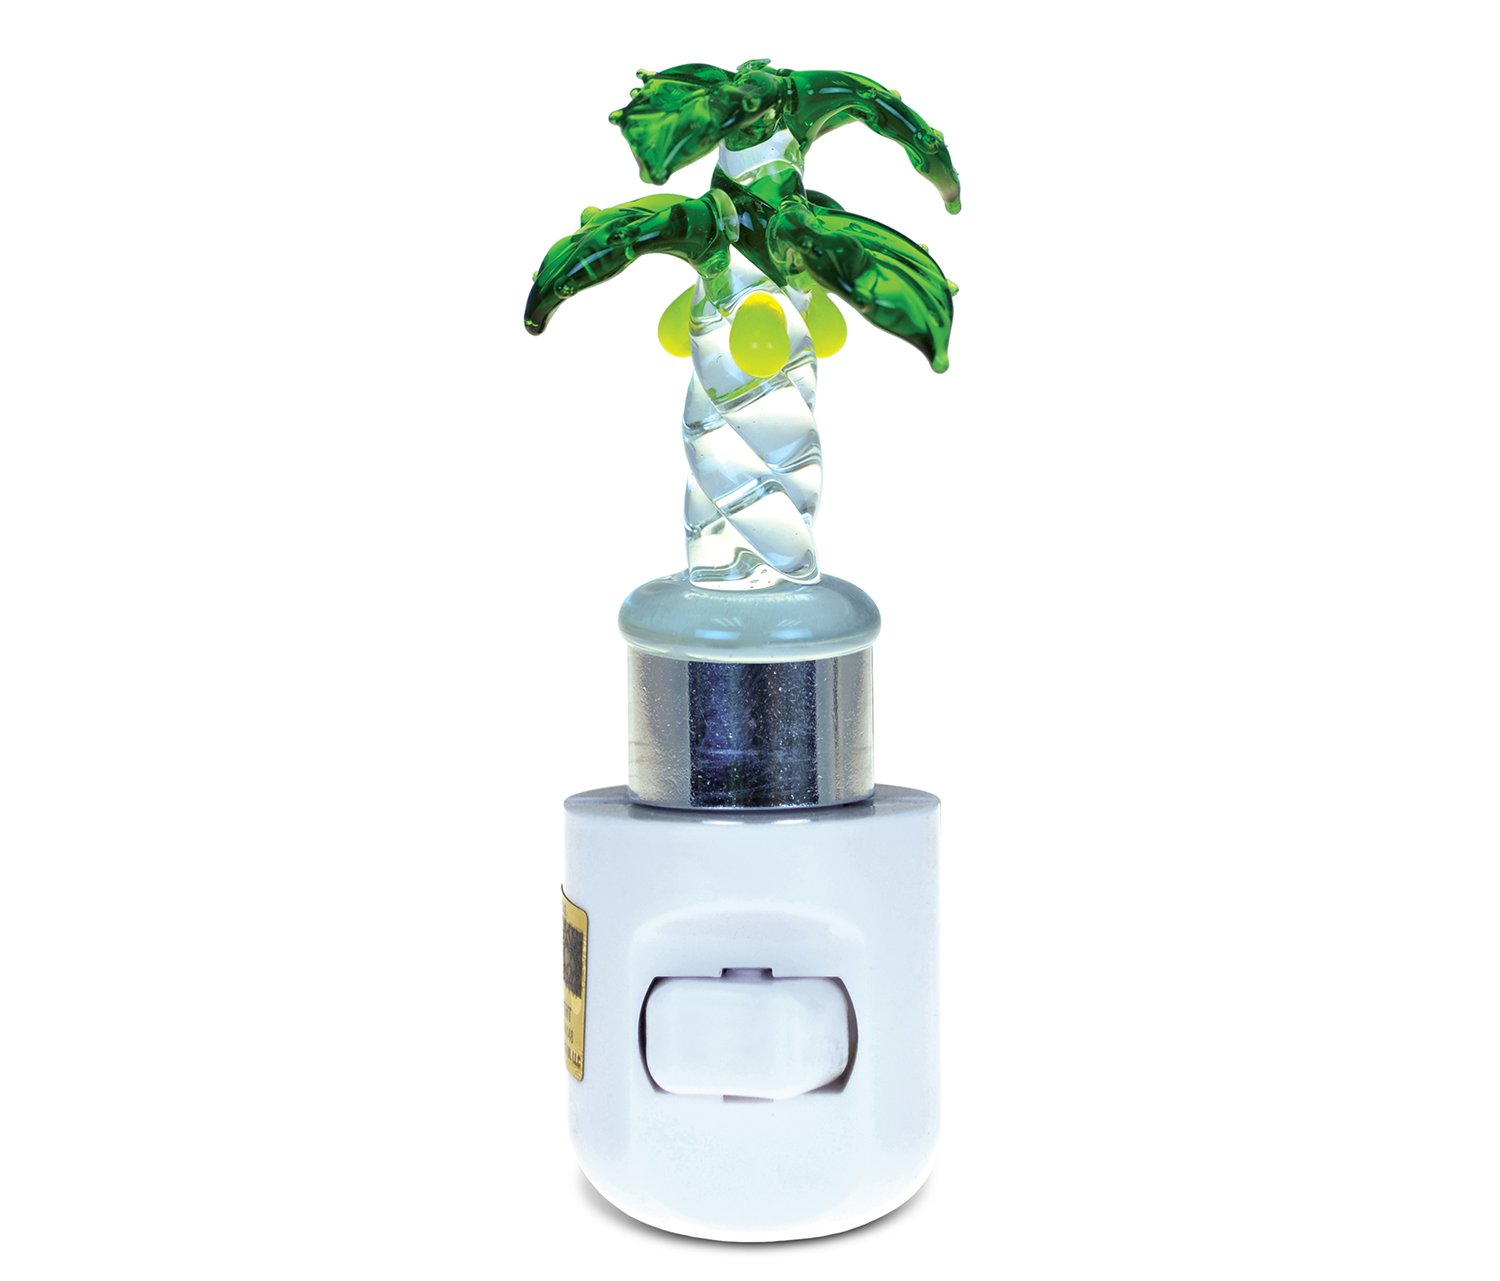 Puzzled Palm Tree LED Night Light Handcraft Art Glass Decorative Home Decor Portable Easy Plug & Switch Novelty Lamp Tropical Hawaiian Beach Theme Adorable Unique Design 1.5x1.5x4.5 Inches- Item #9628